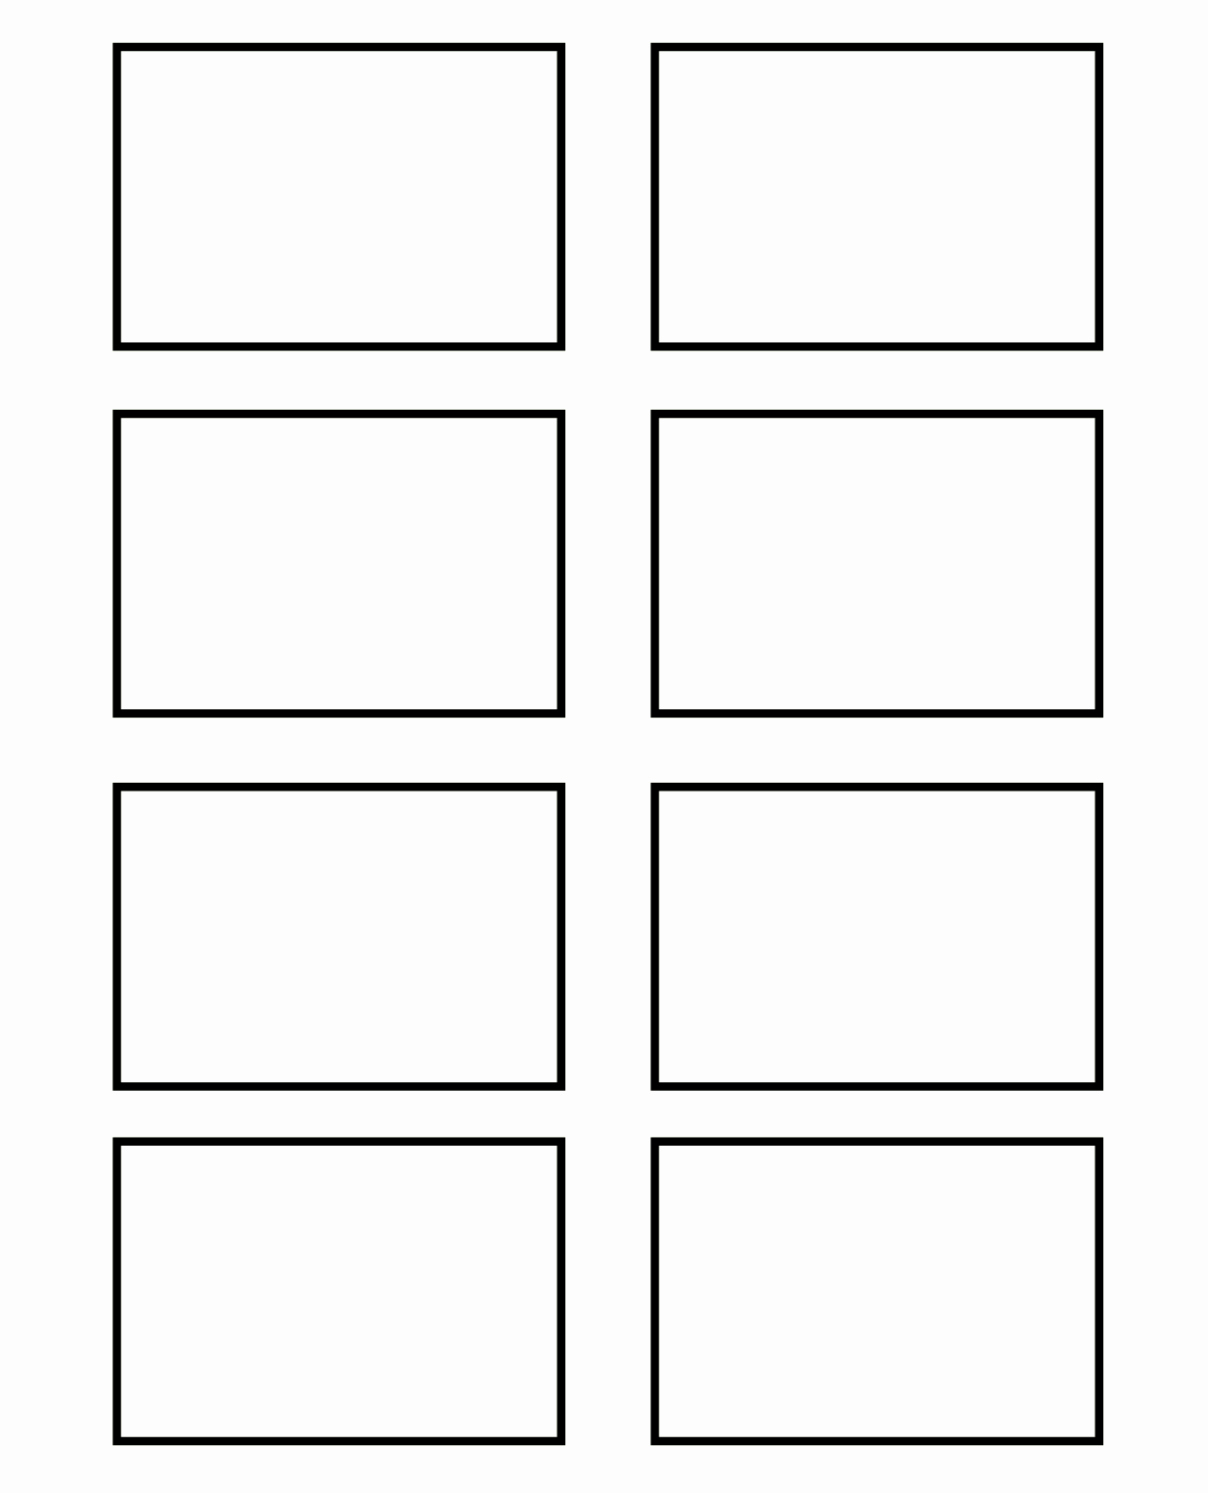 Free Downloadable Templates for Word Unique Name Tag Template Free Printable Word